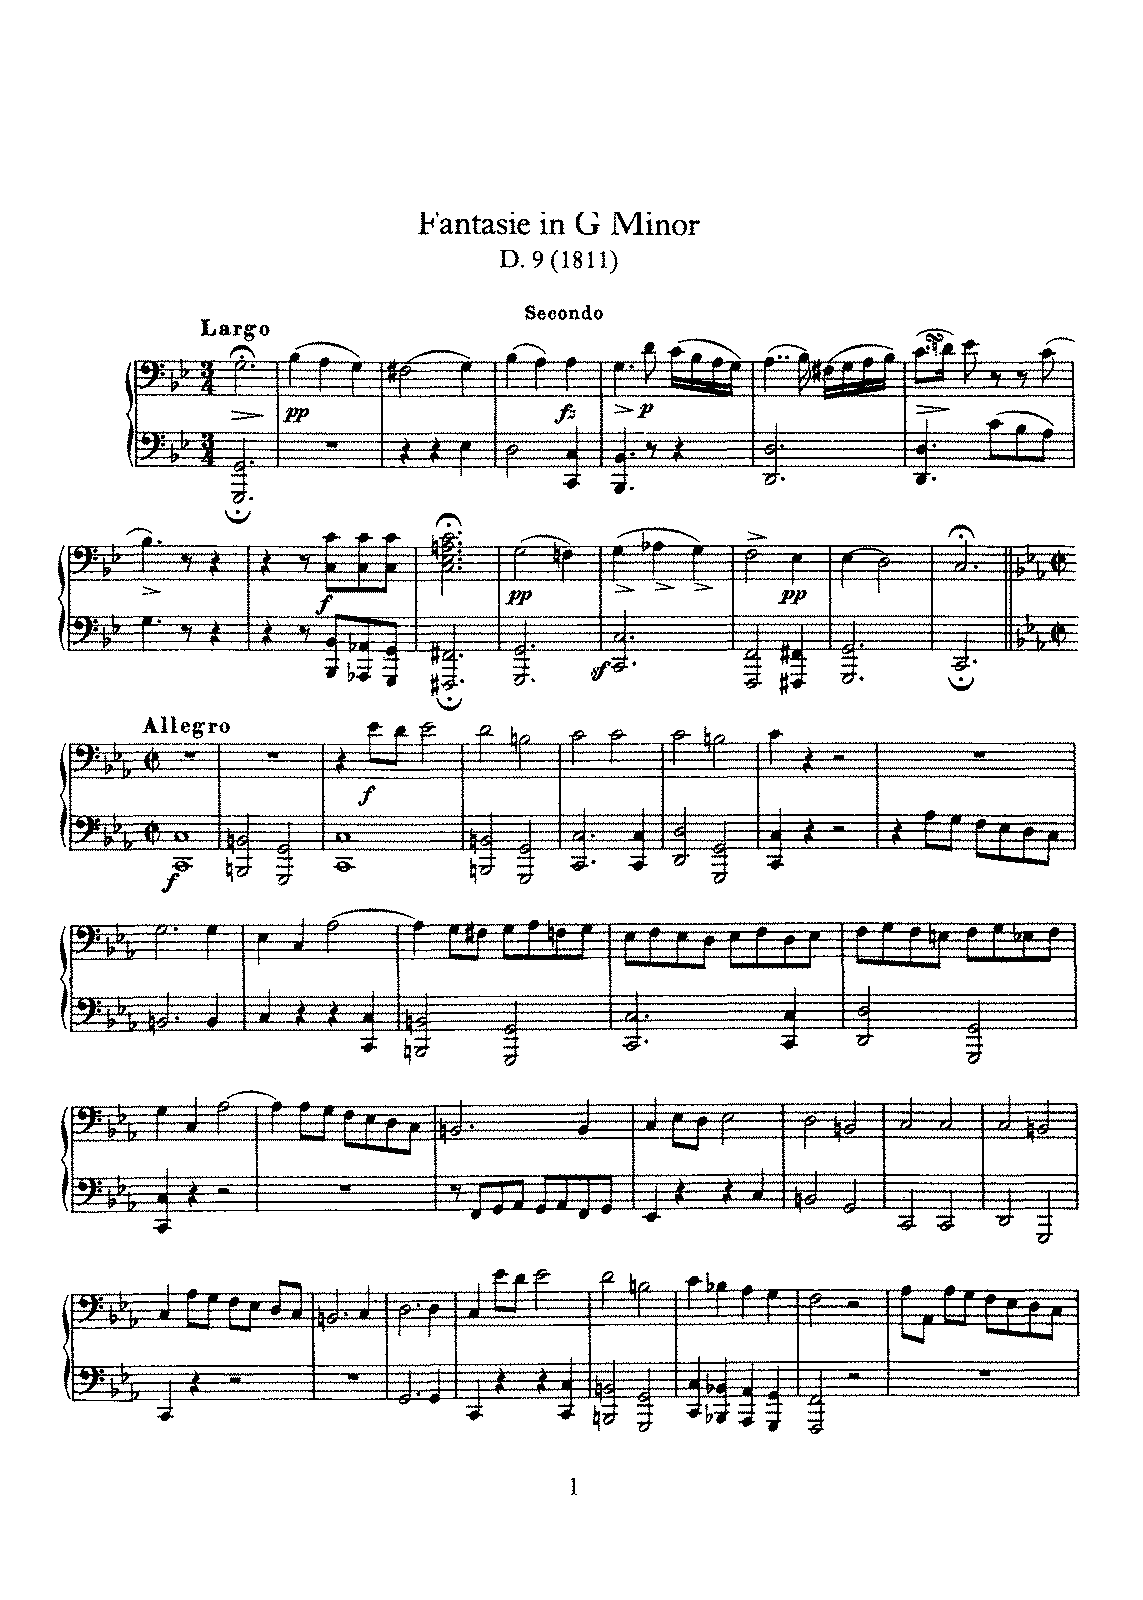 Schubert - D.9 - Fantasie in G minor.pdf